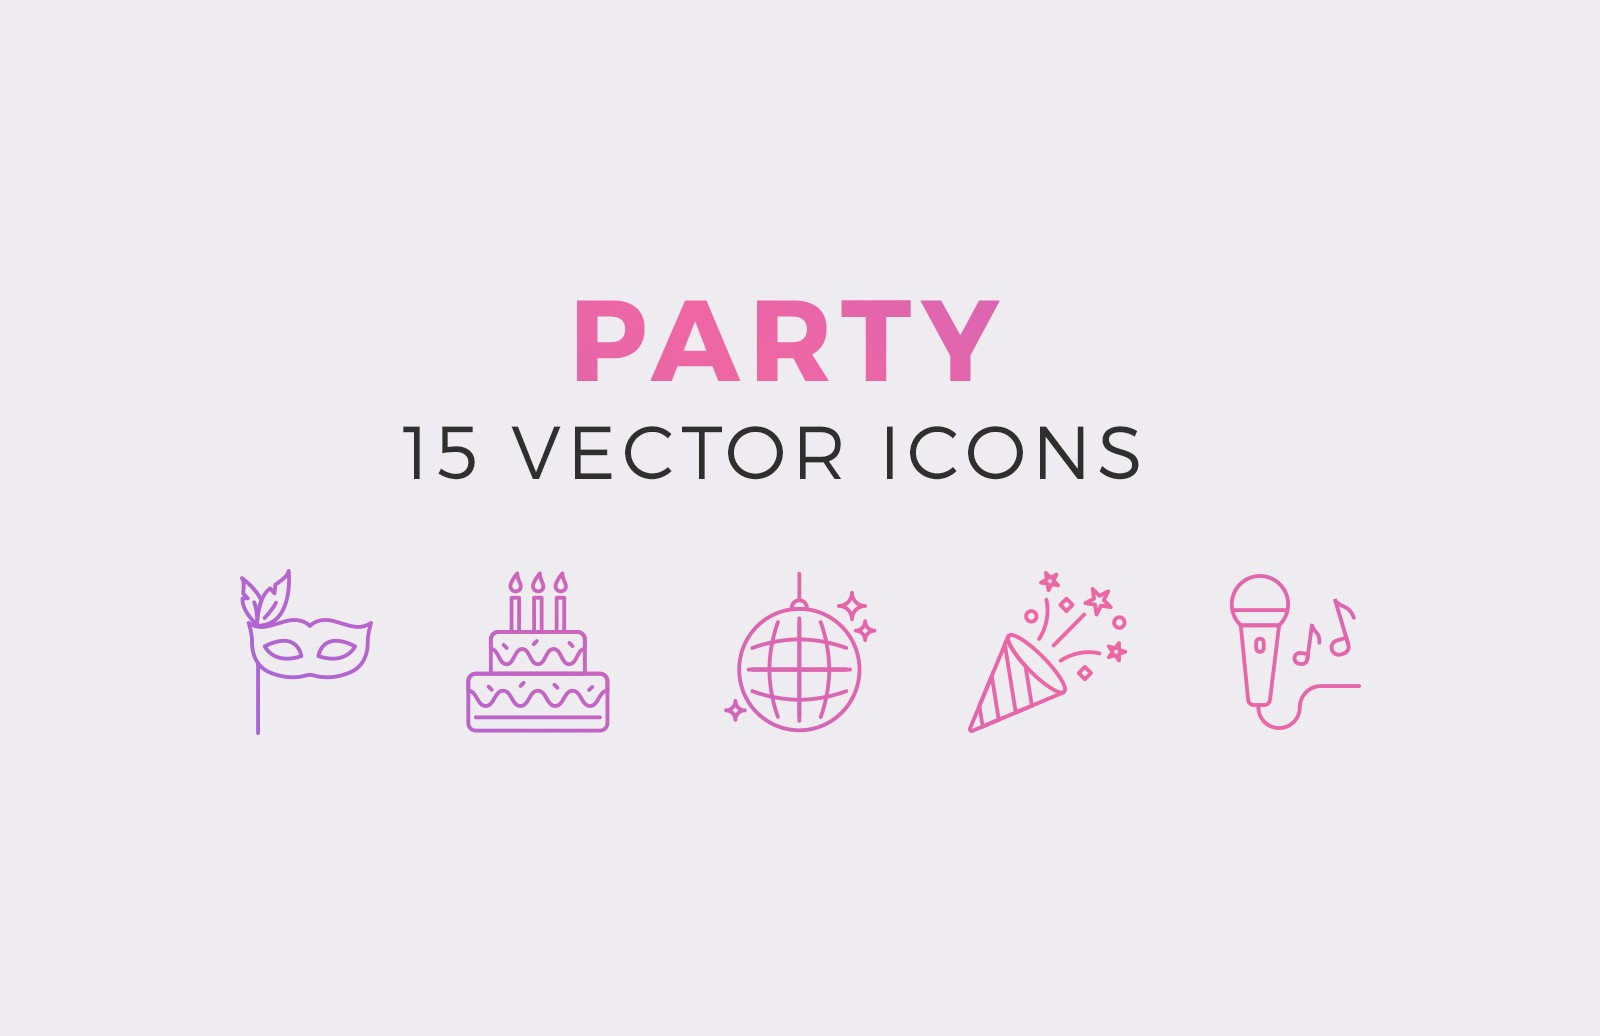 Party Vector Icons Preview 1A